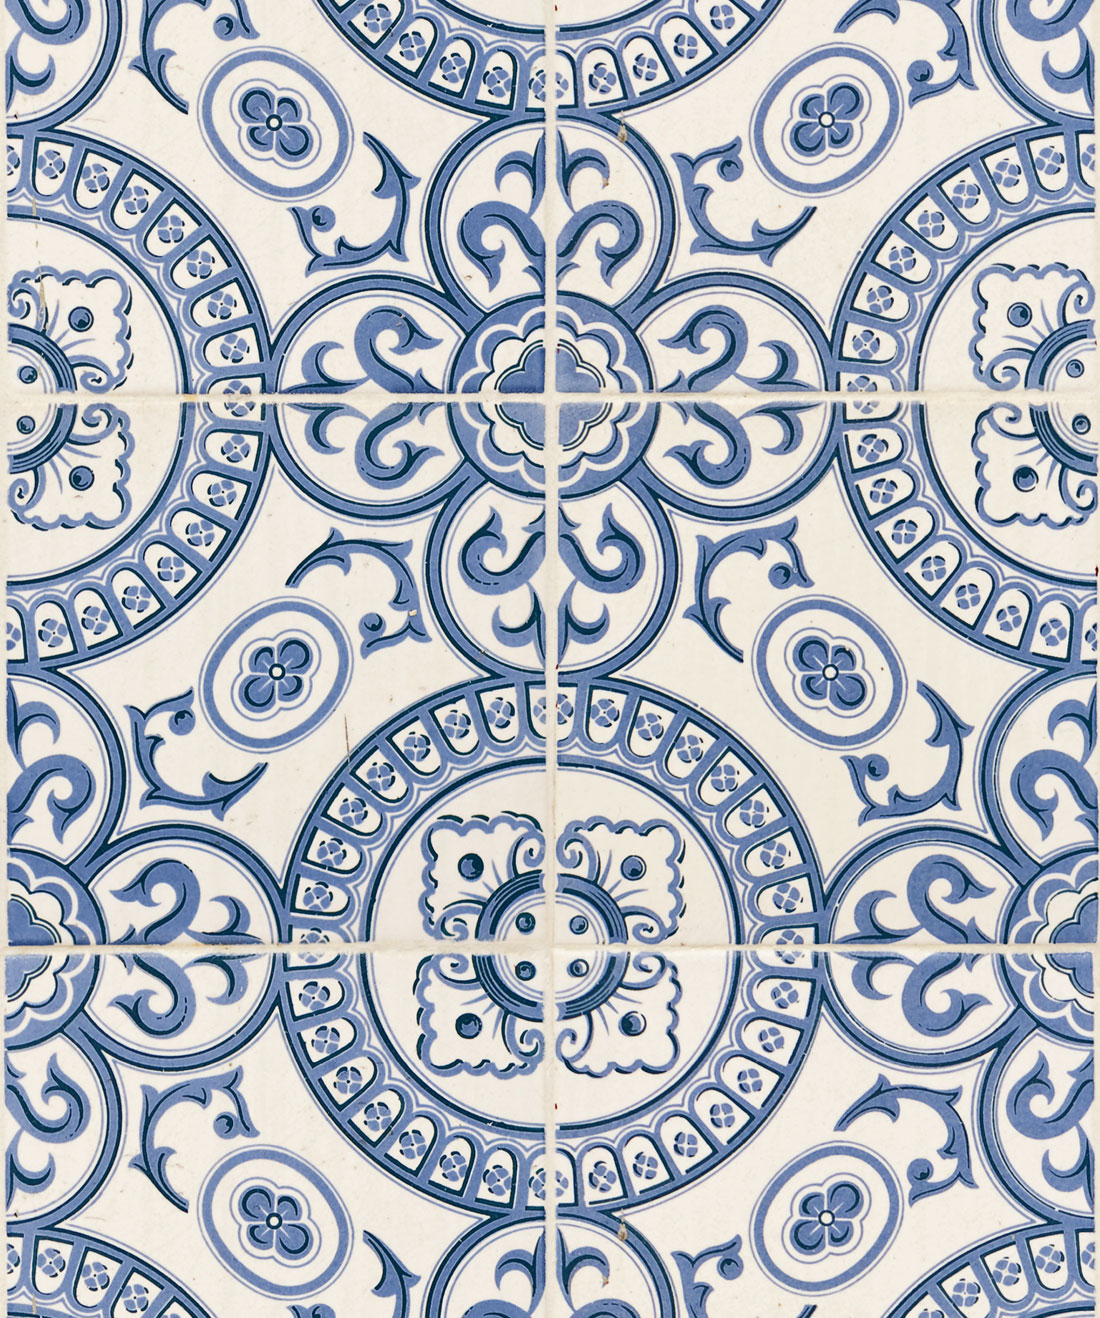 Heritage Tiles Wallpaper